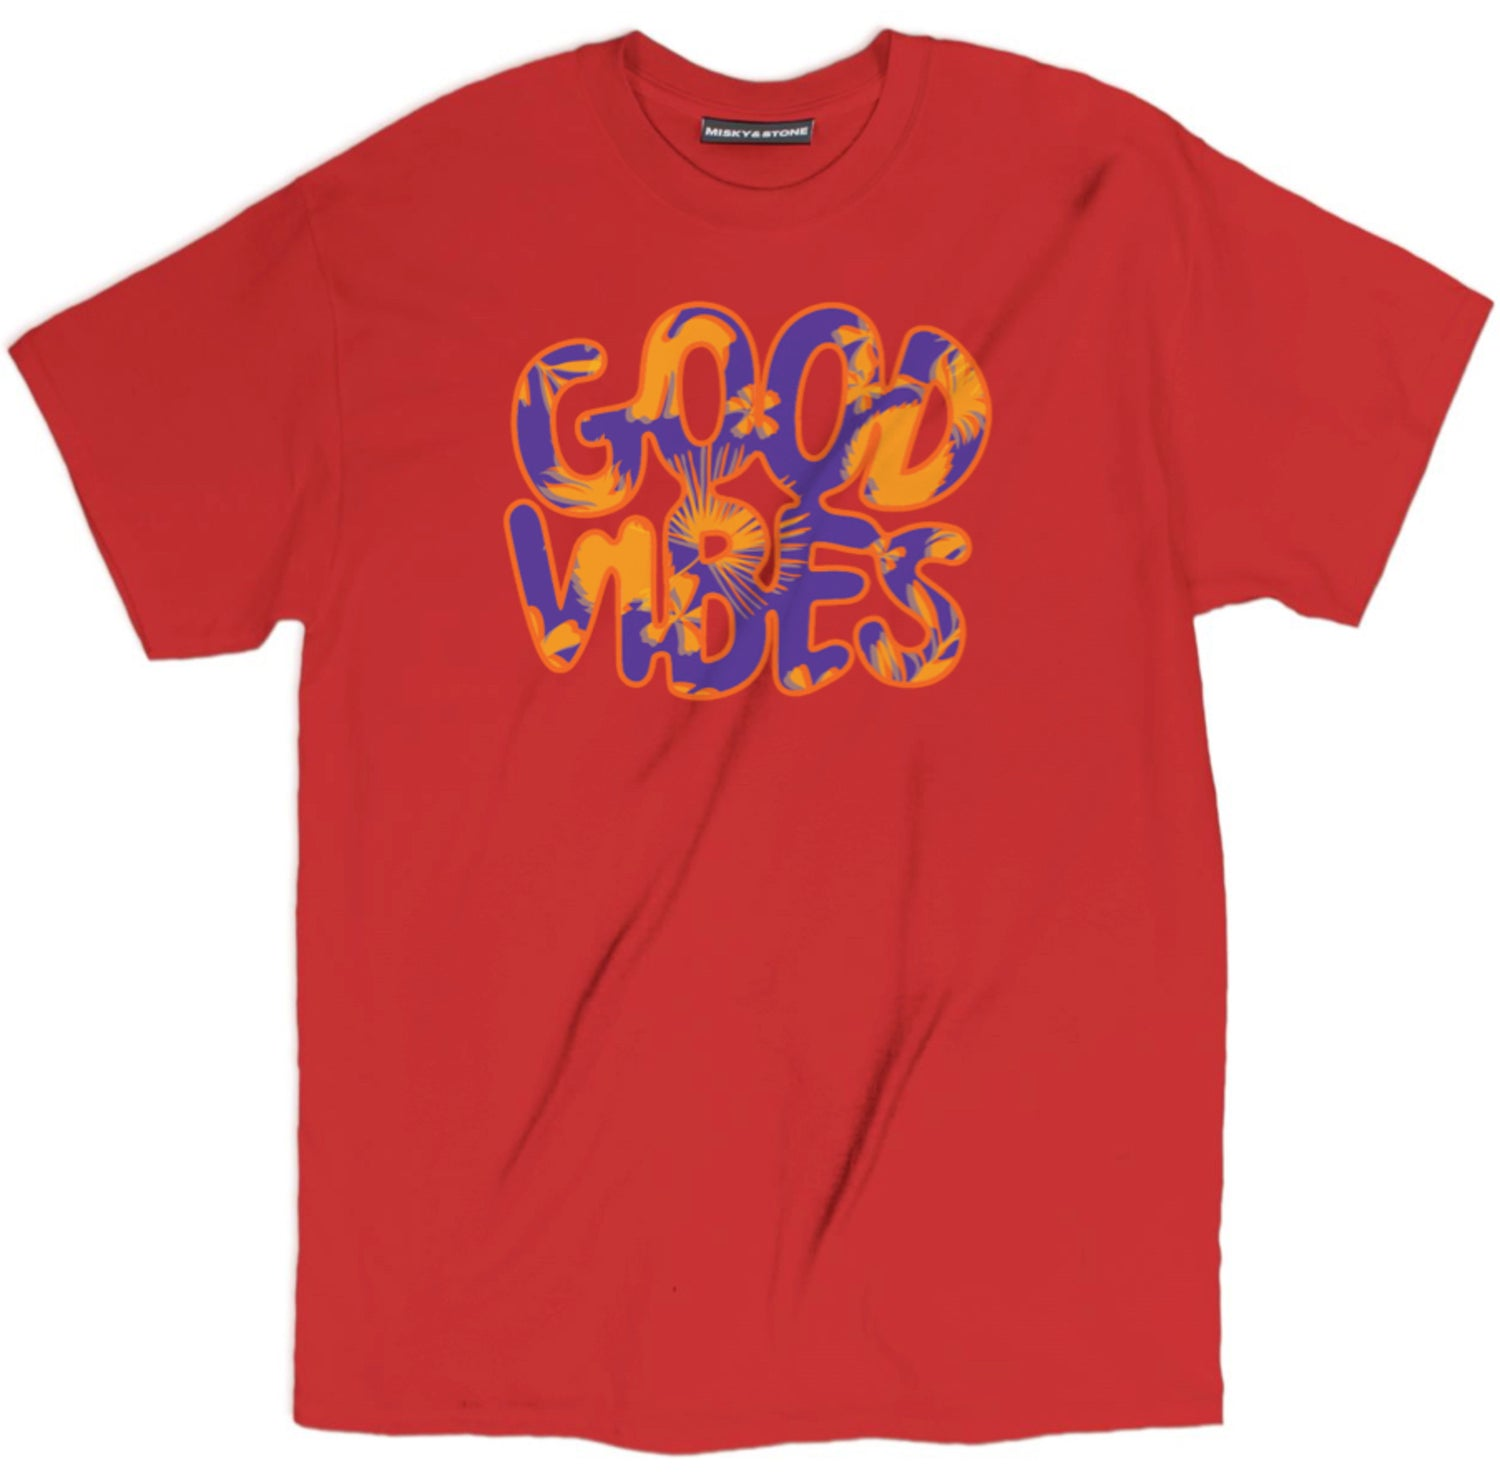 Good Vibes Positive Thoughts T Shirt